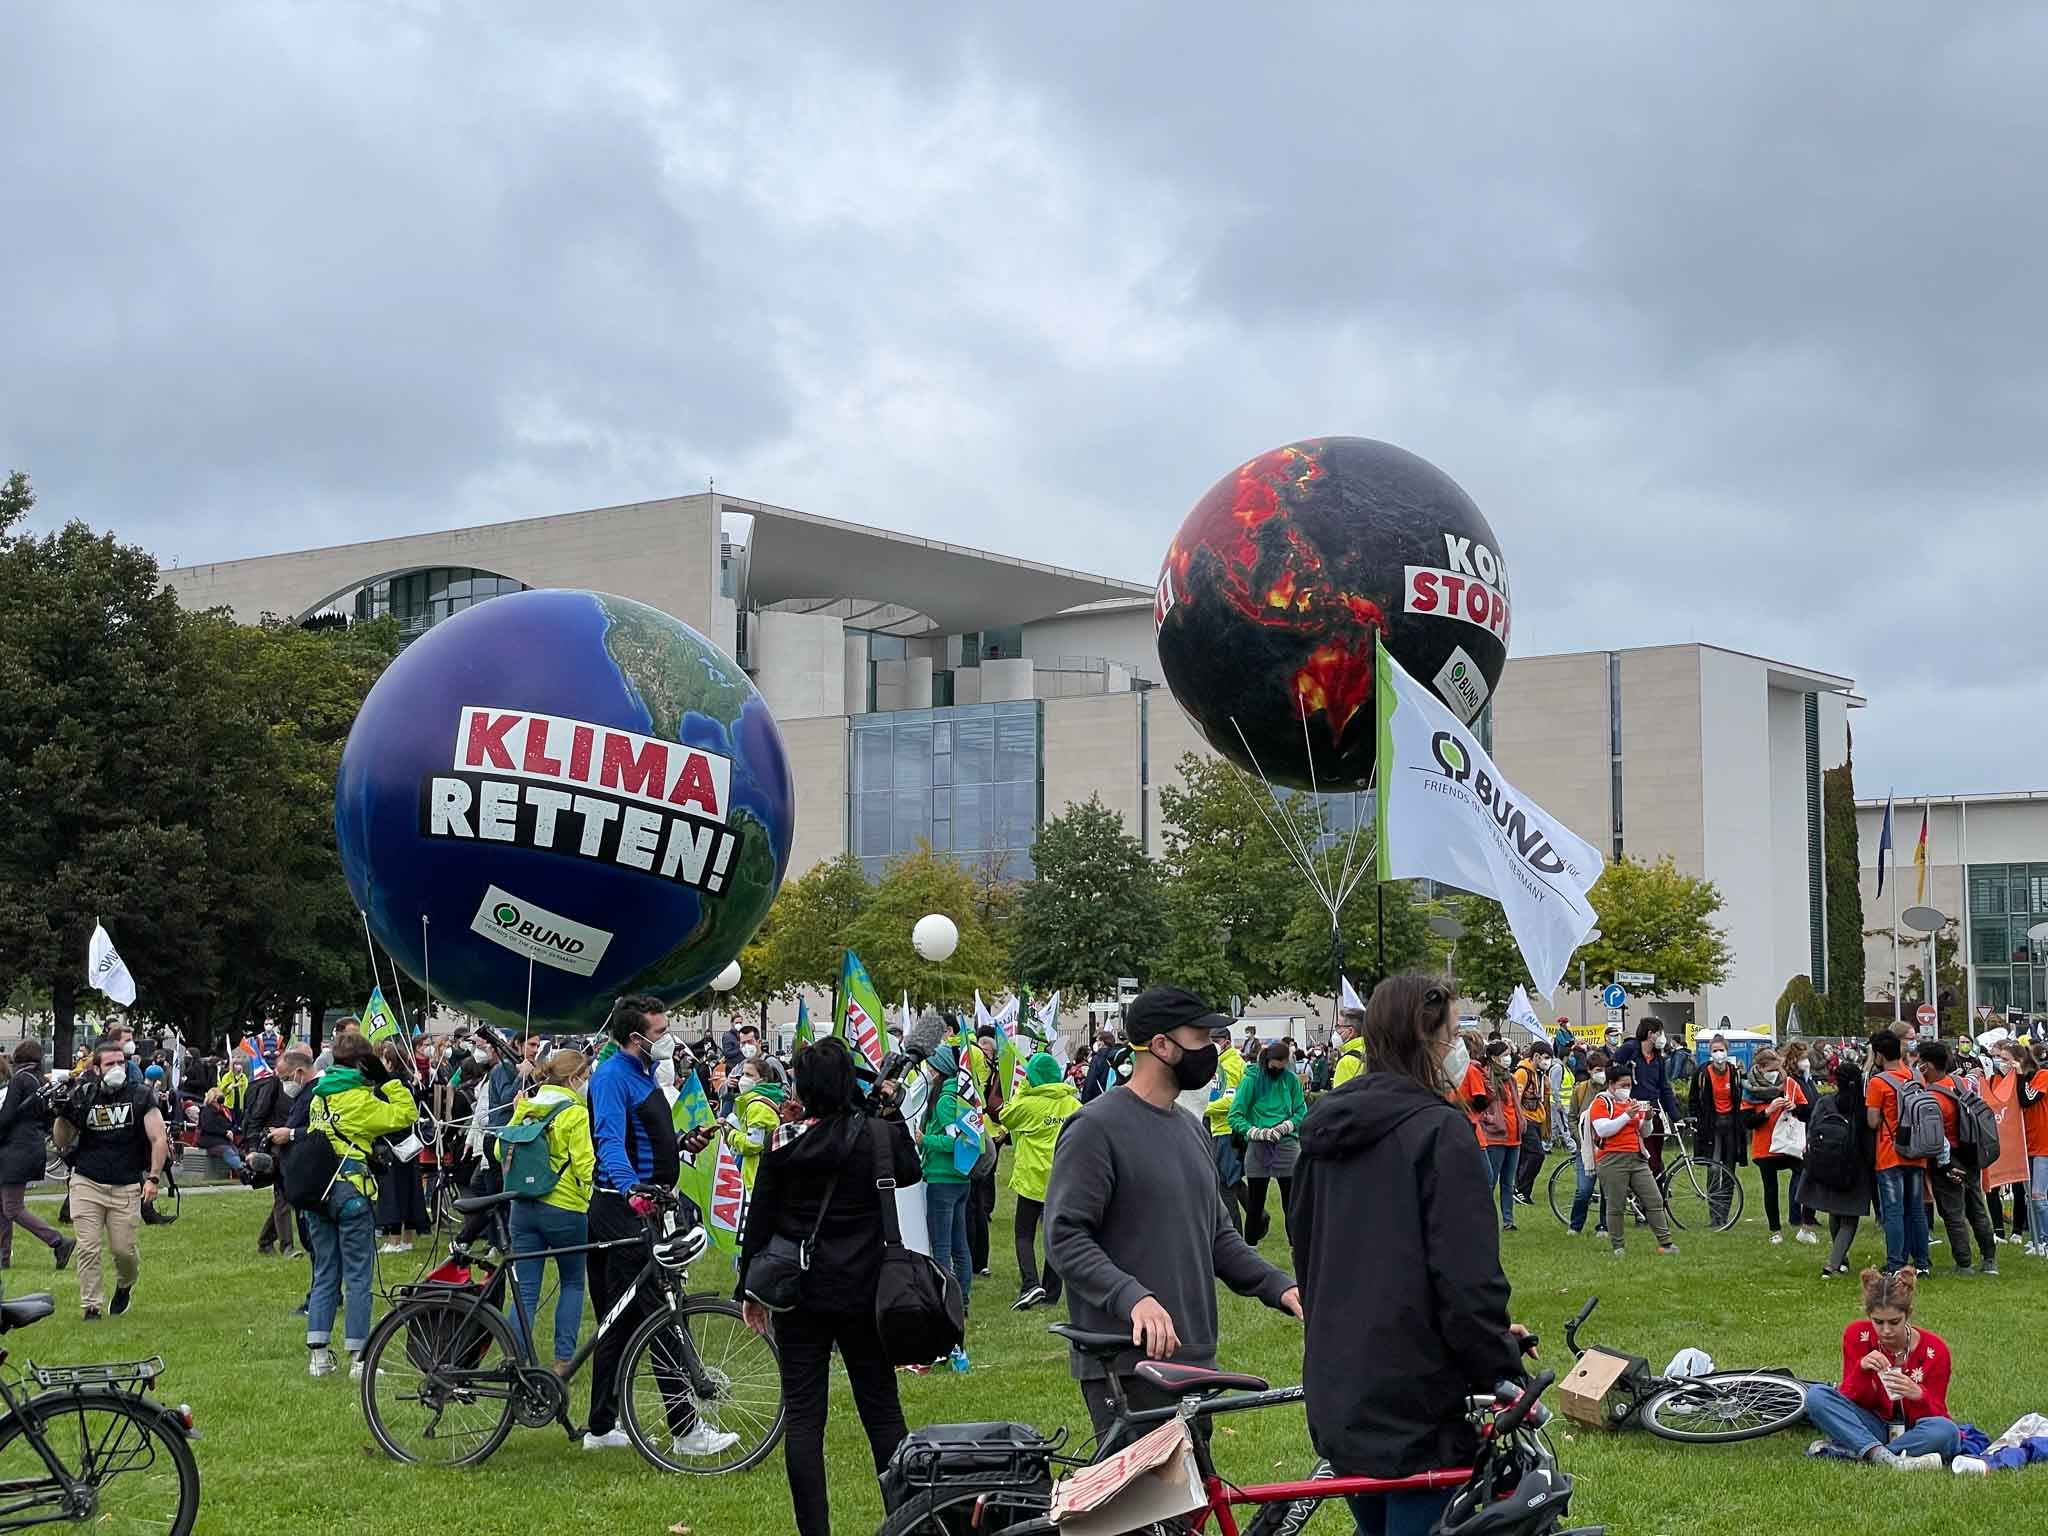 """Berliners—including members of the Cobot team—gather in the grass front of the German parliament with their bicycles, placards, and balloons that say """"Klima Retten!"""""""